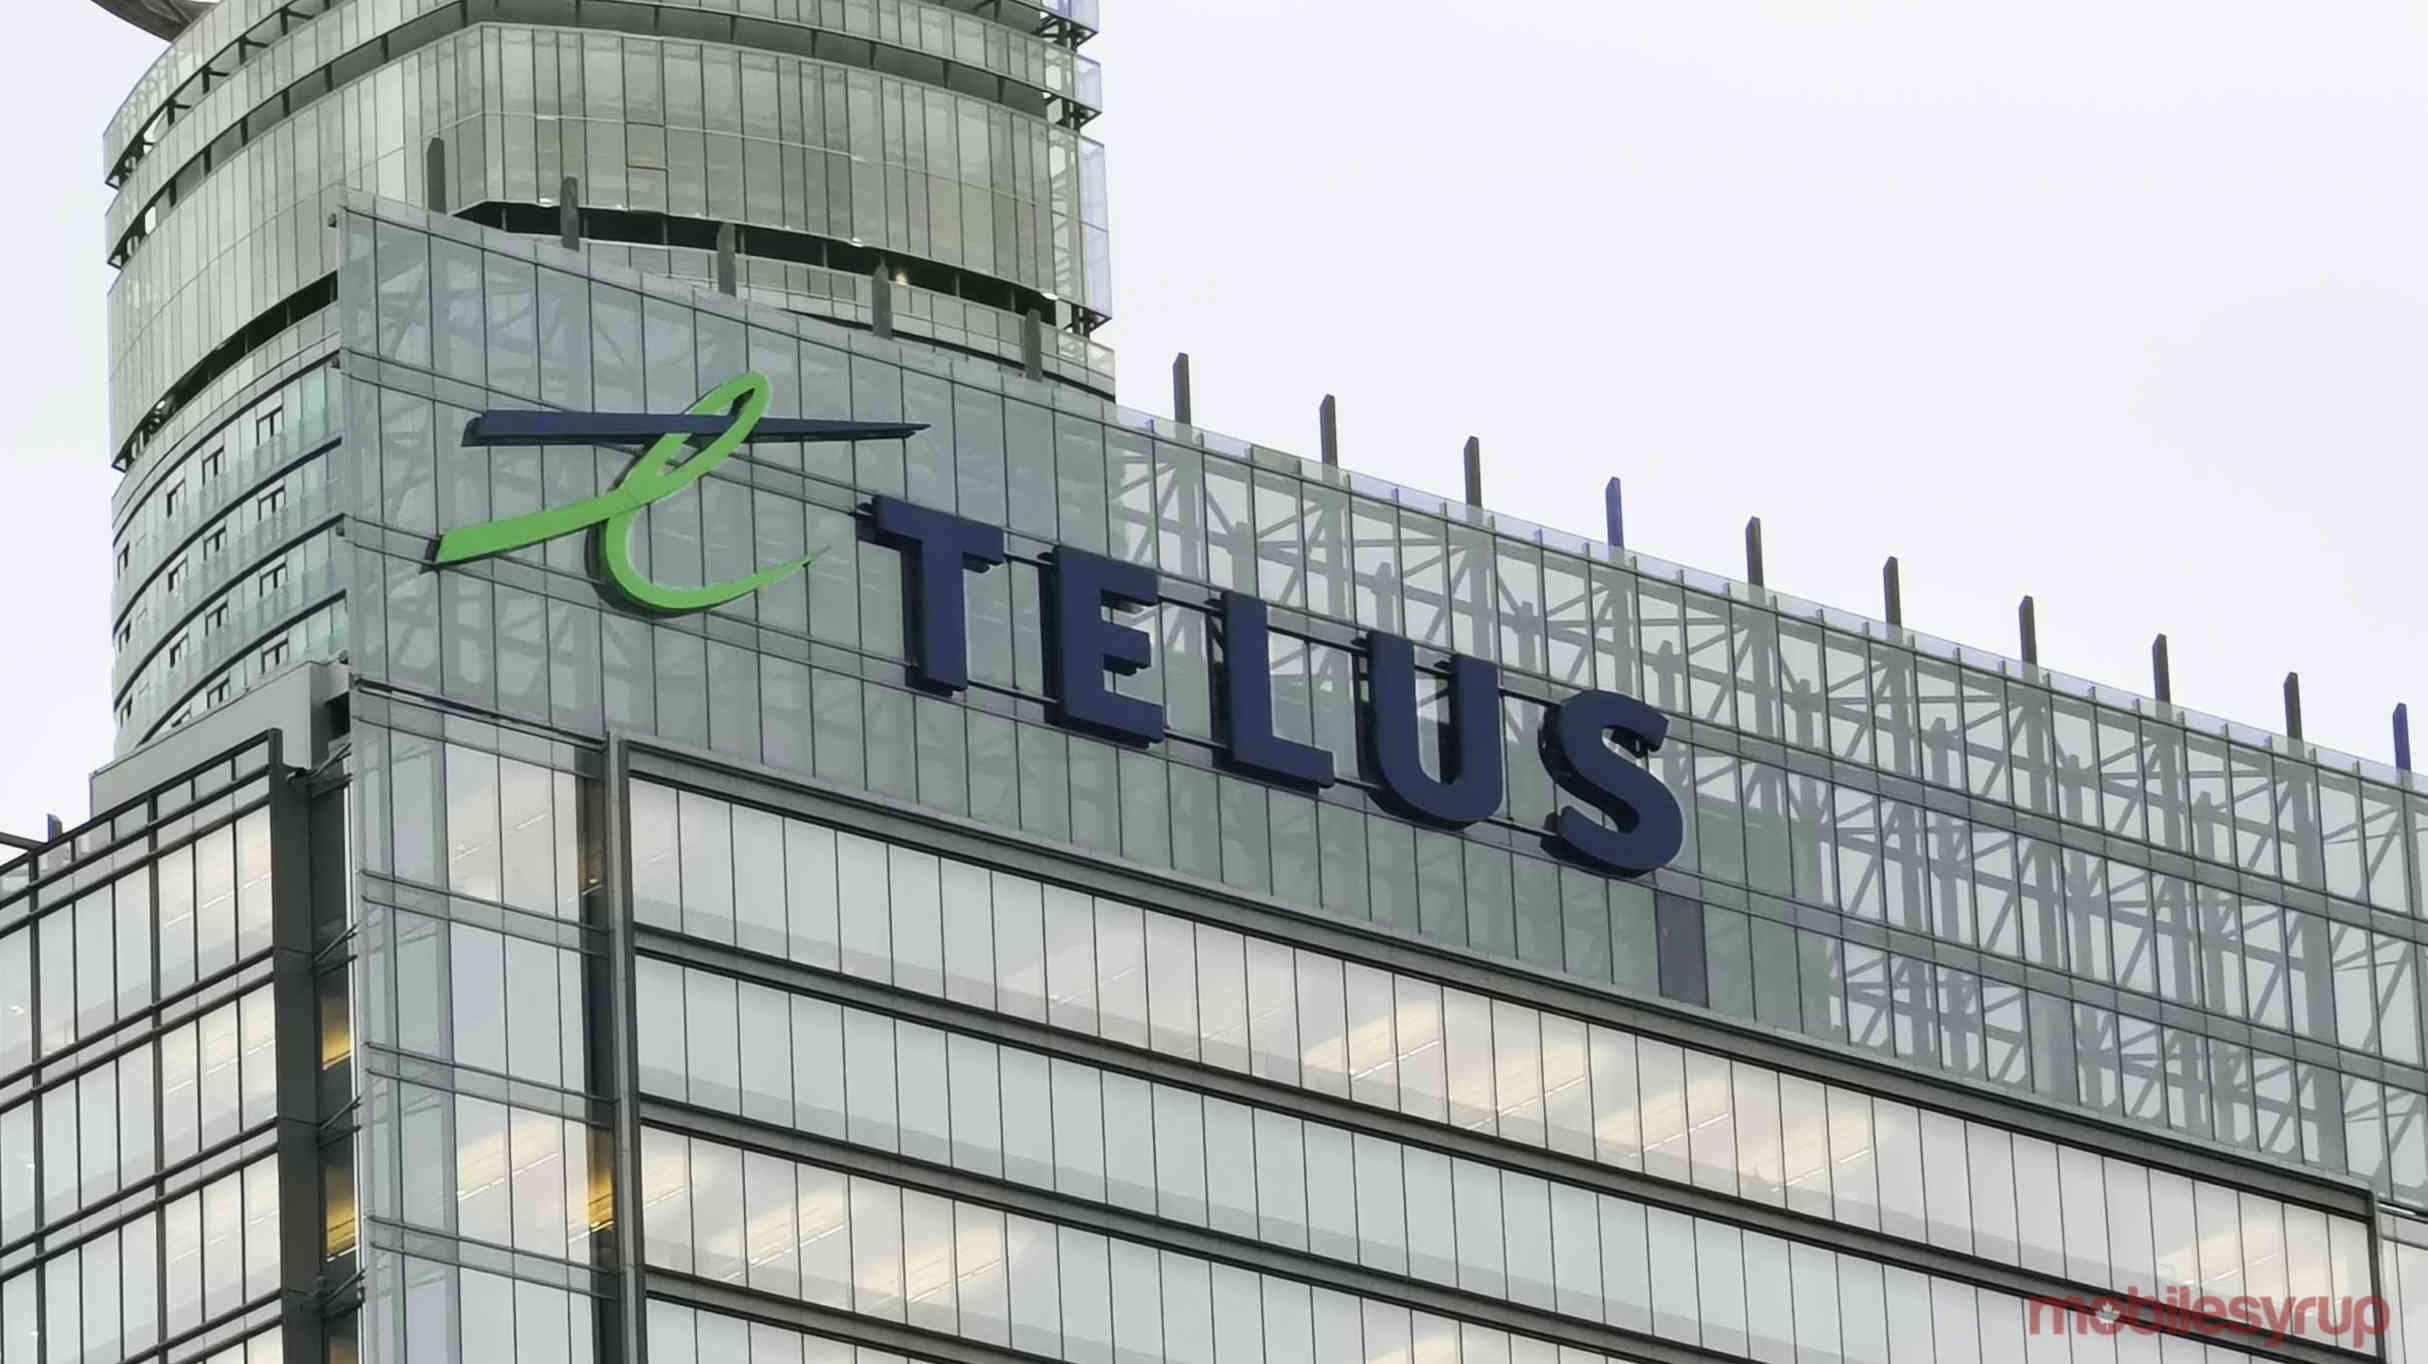 Vancouver SkyTrain gets access to Telus' network in Dunsmuir tunnel